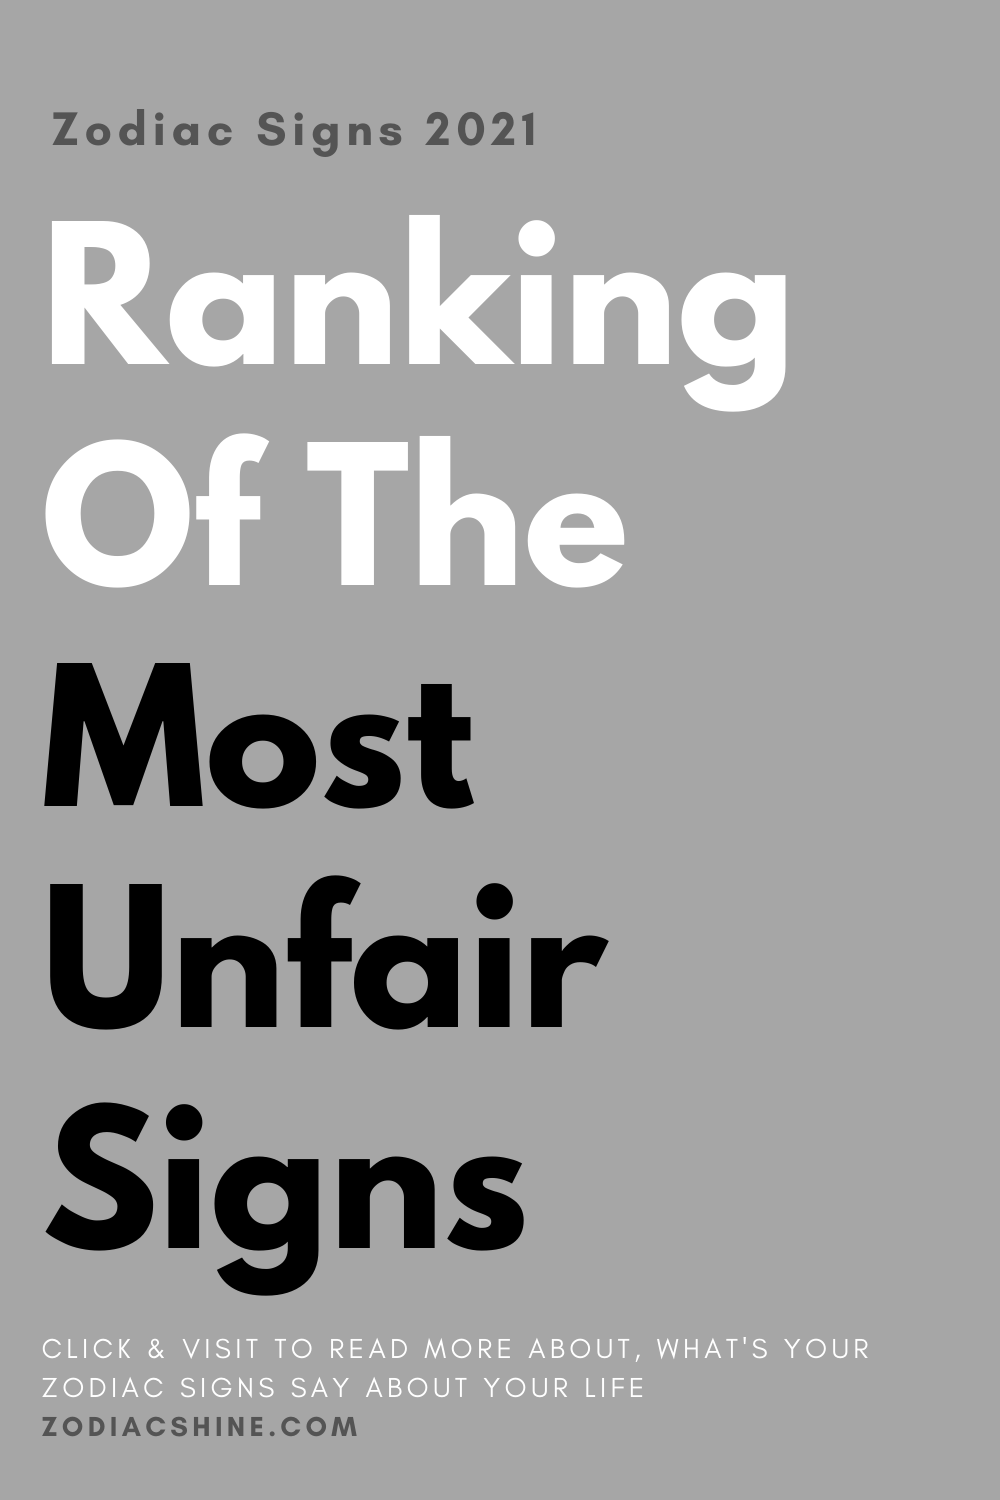 Ranking Of The Most Unfair Signs